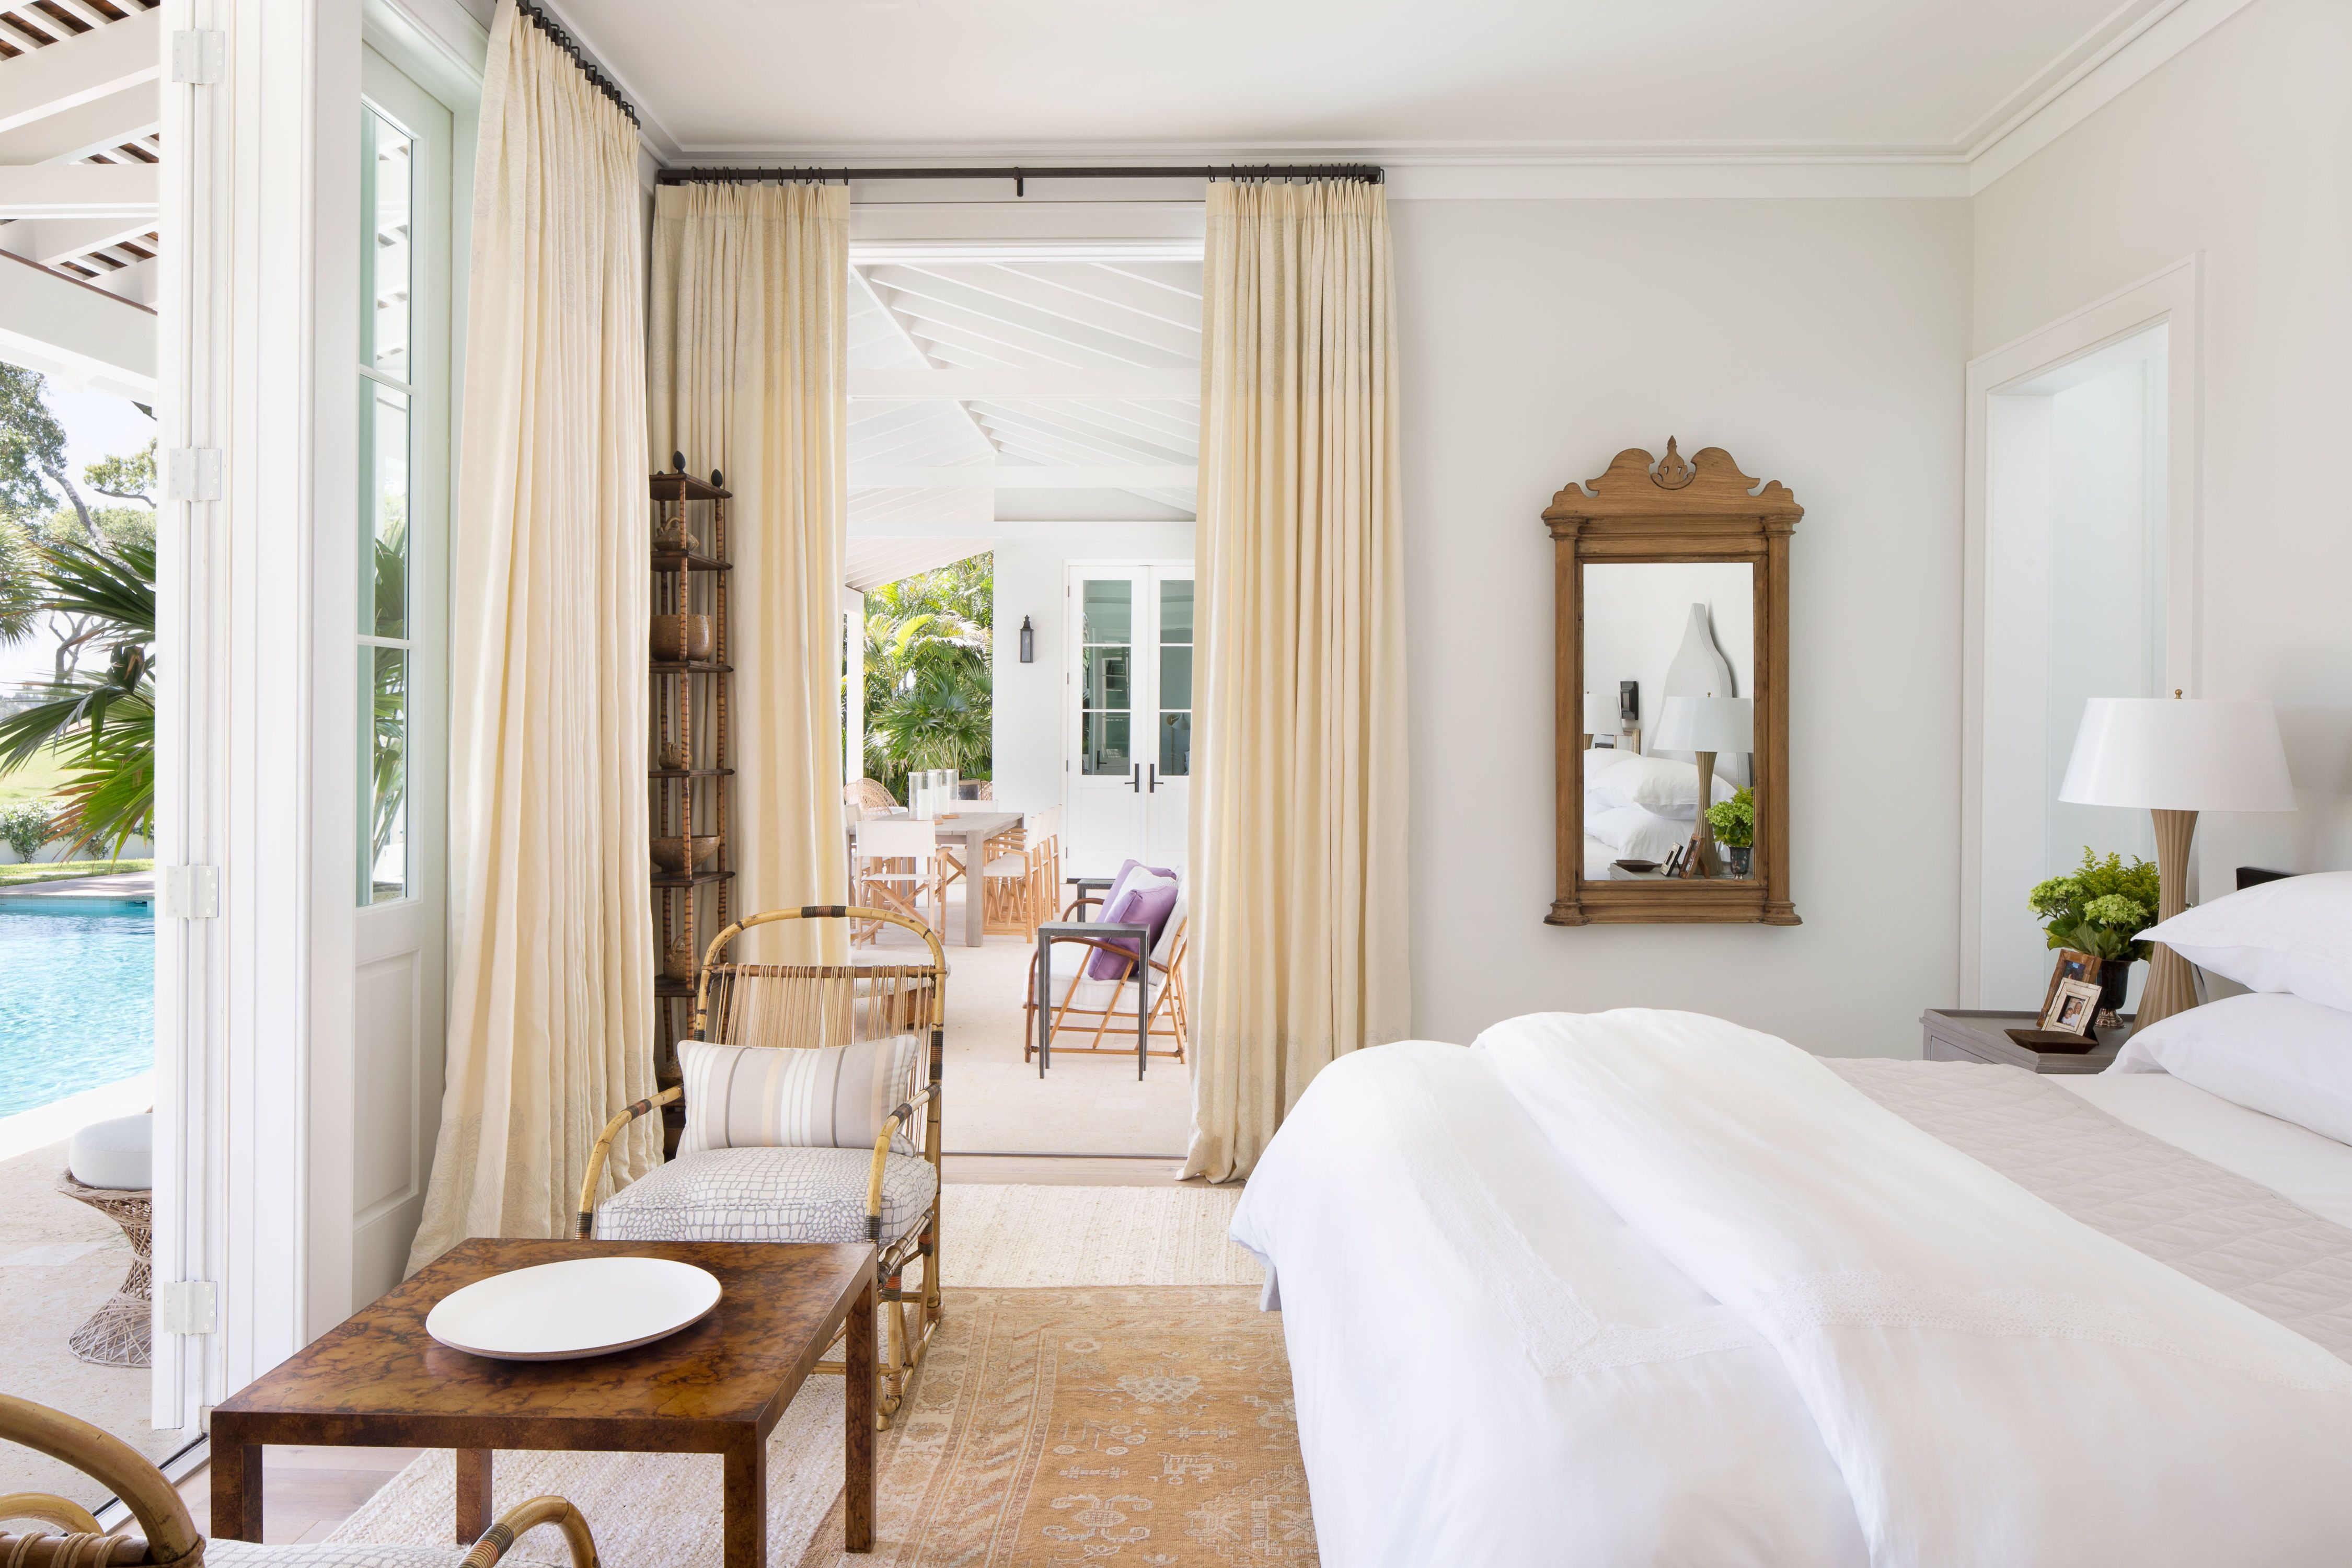 10 New Ideas for Creating the Most Relaxing Bedroom Ever